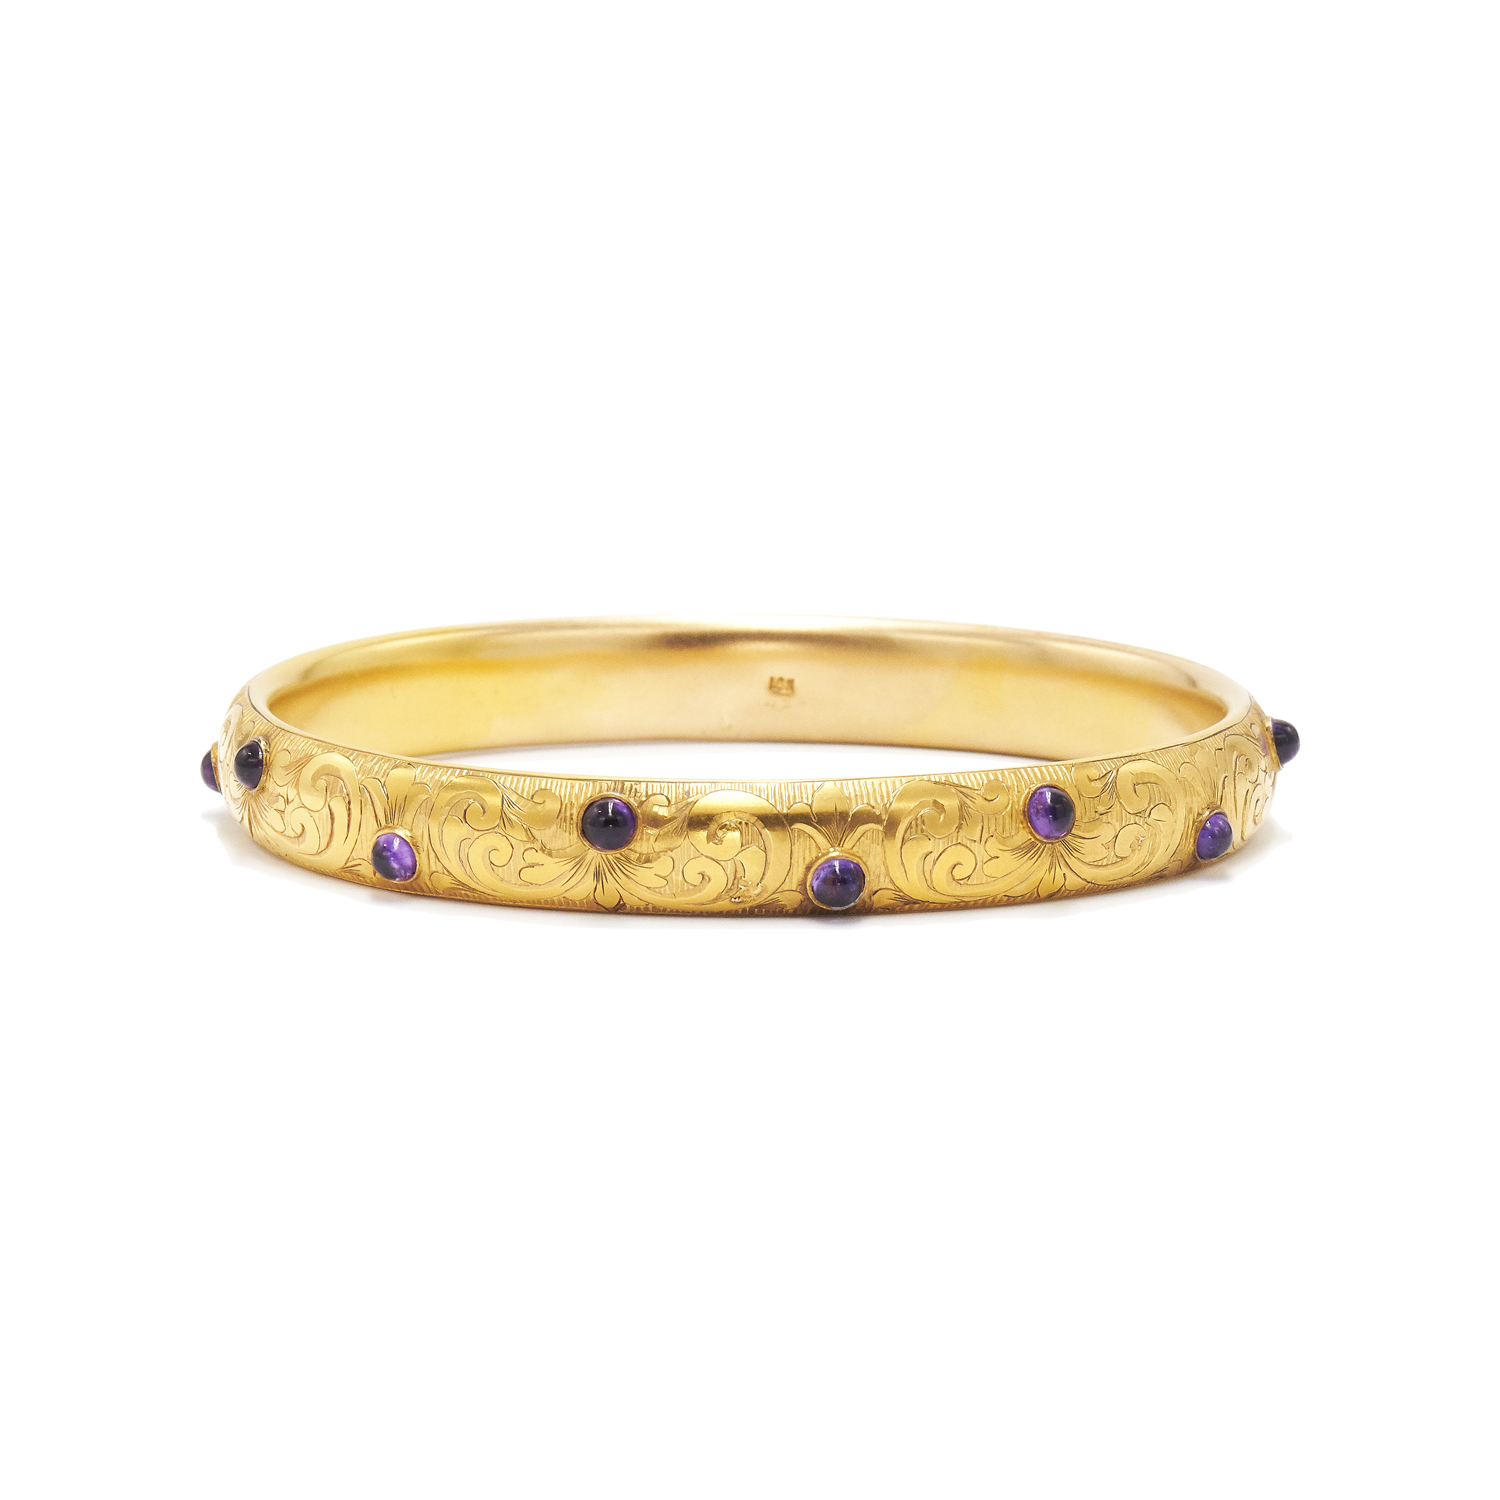 Antique 14K Yellow Gold and Cabochon Amethyst Engraved Bangle Style B-37570-FL-0-0